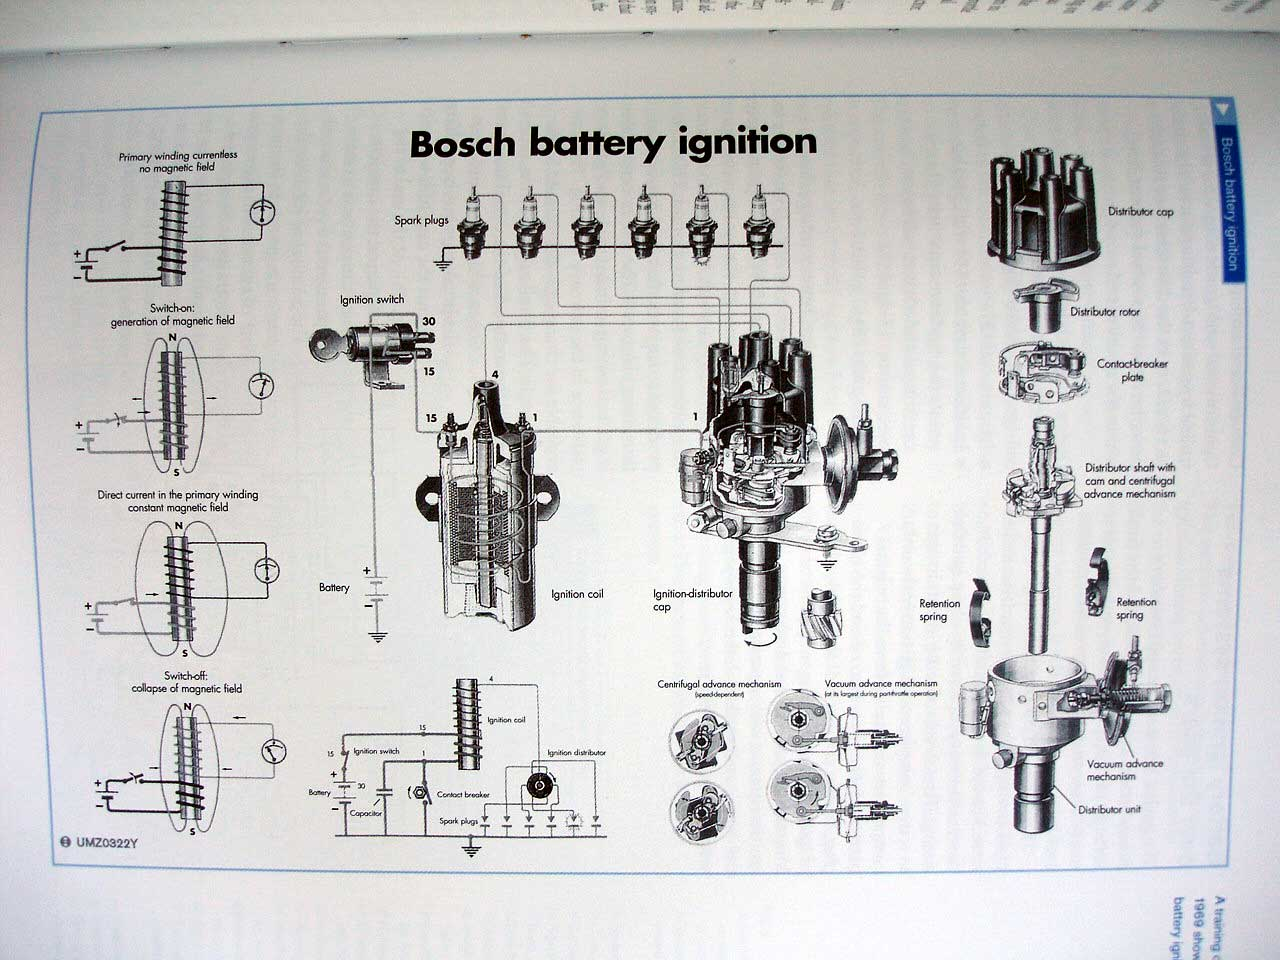 Engine Electrical System Diagram | Best Wiring Liry on freightliner cruise control diagram, freightliner parts diagrams, freightliner suspension diagram, freightliner electrical diagrams, freightliner fuse panel diagram, freightliner starter diagram, freightliner a c compressor diagram, freightliner ac diagram, freightliner truck diagram, freightliner starter solenoid wiring, freightliner columbia fuse box diagram, freightliner schematics, freightliner air system diagram, freightliner fuel system diagram, freightliner fuse box location, freightliner relay diagram, freightliner air tank diagram, 2007 freightliner columbia plug diagrams, freightliner steering diagram, freightliner wiring help,